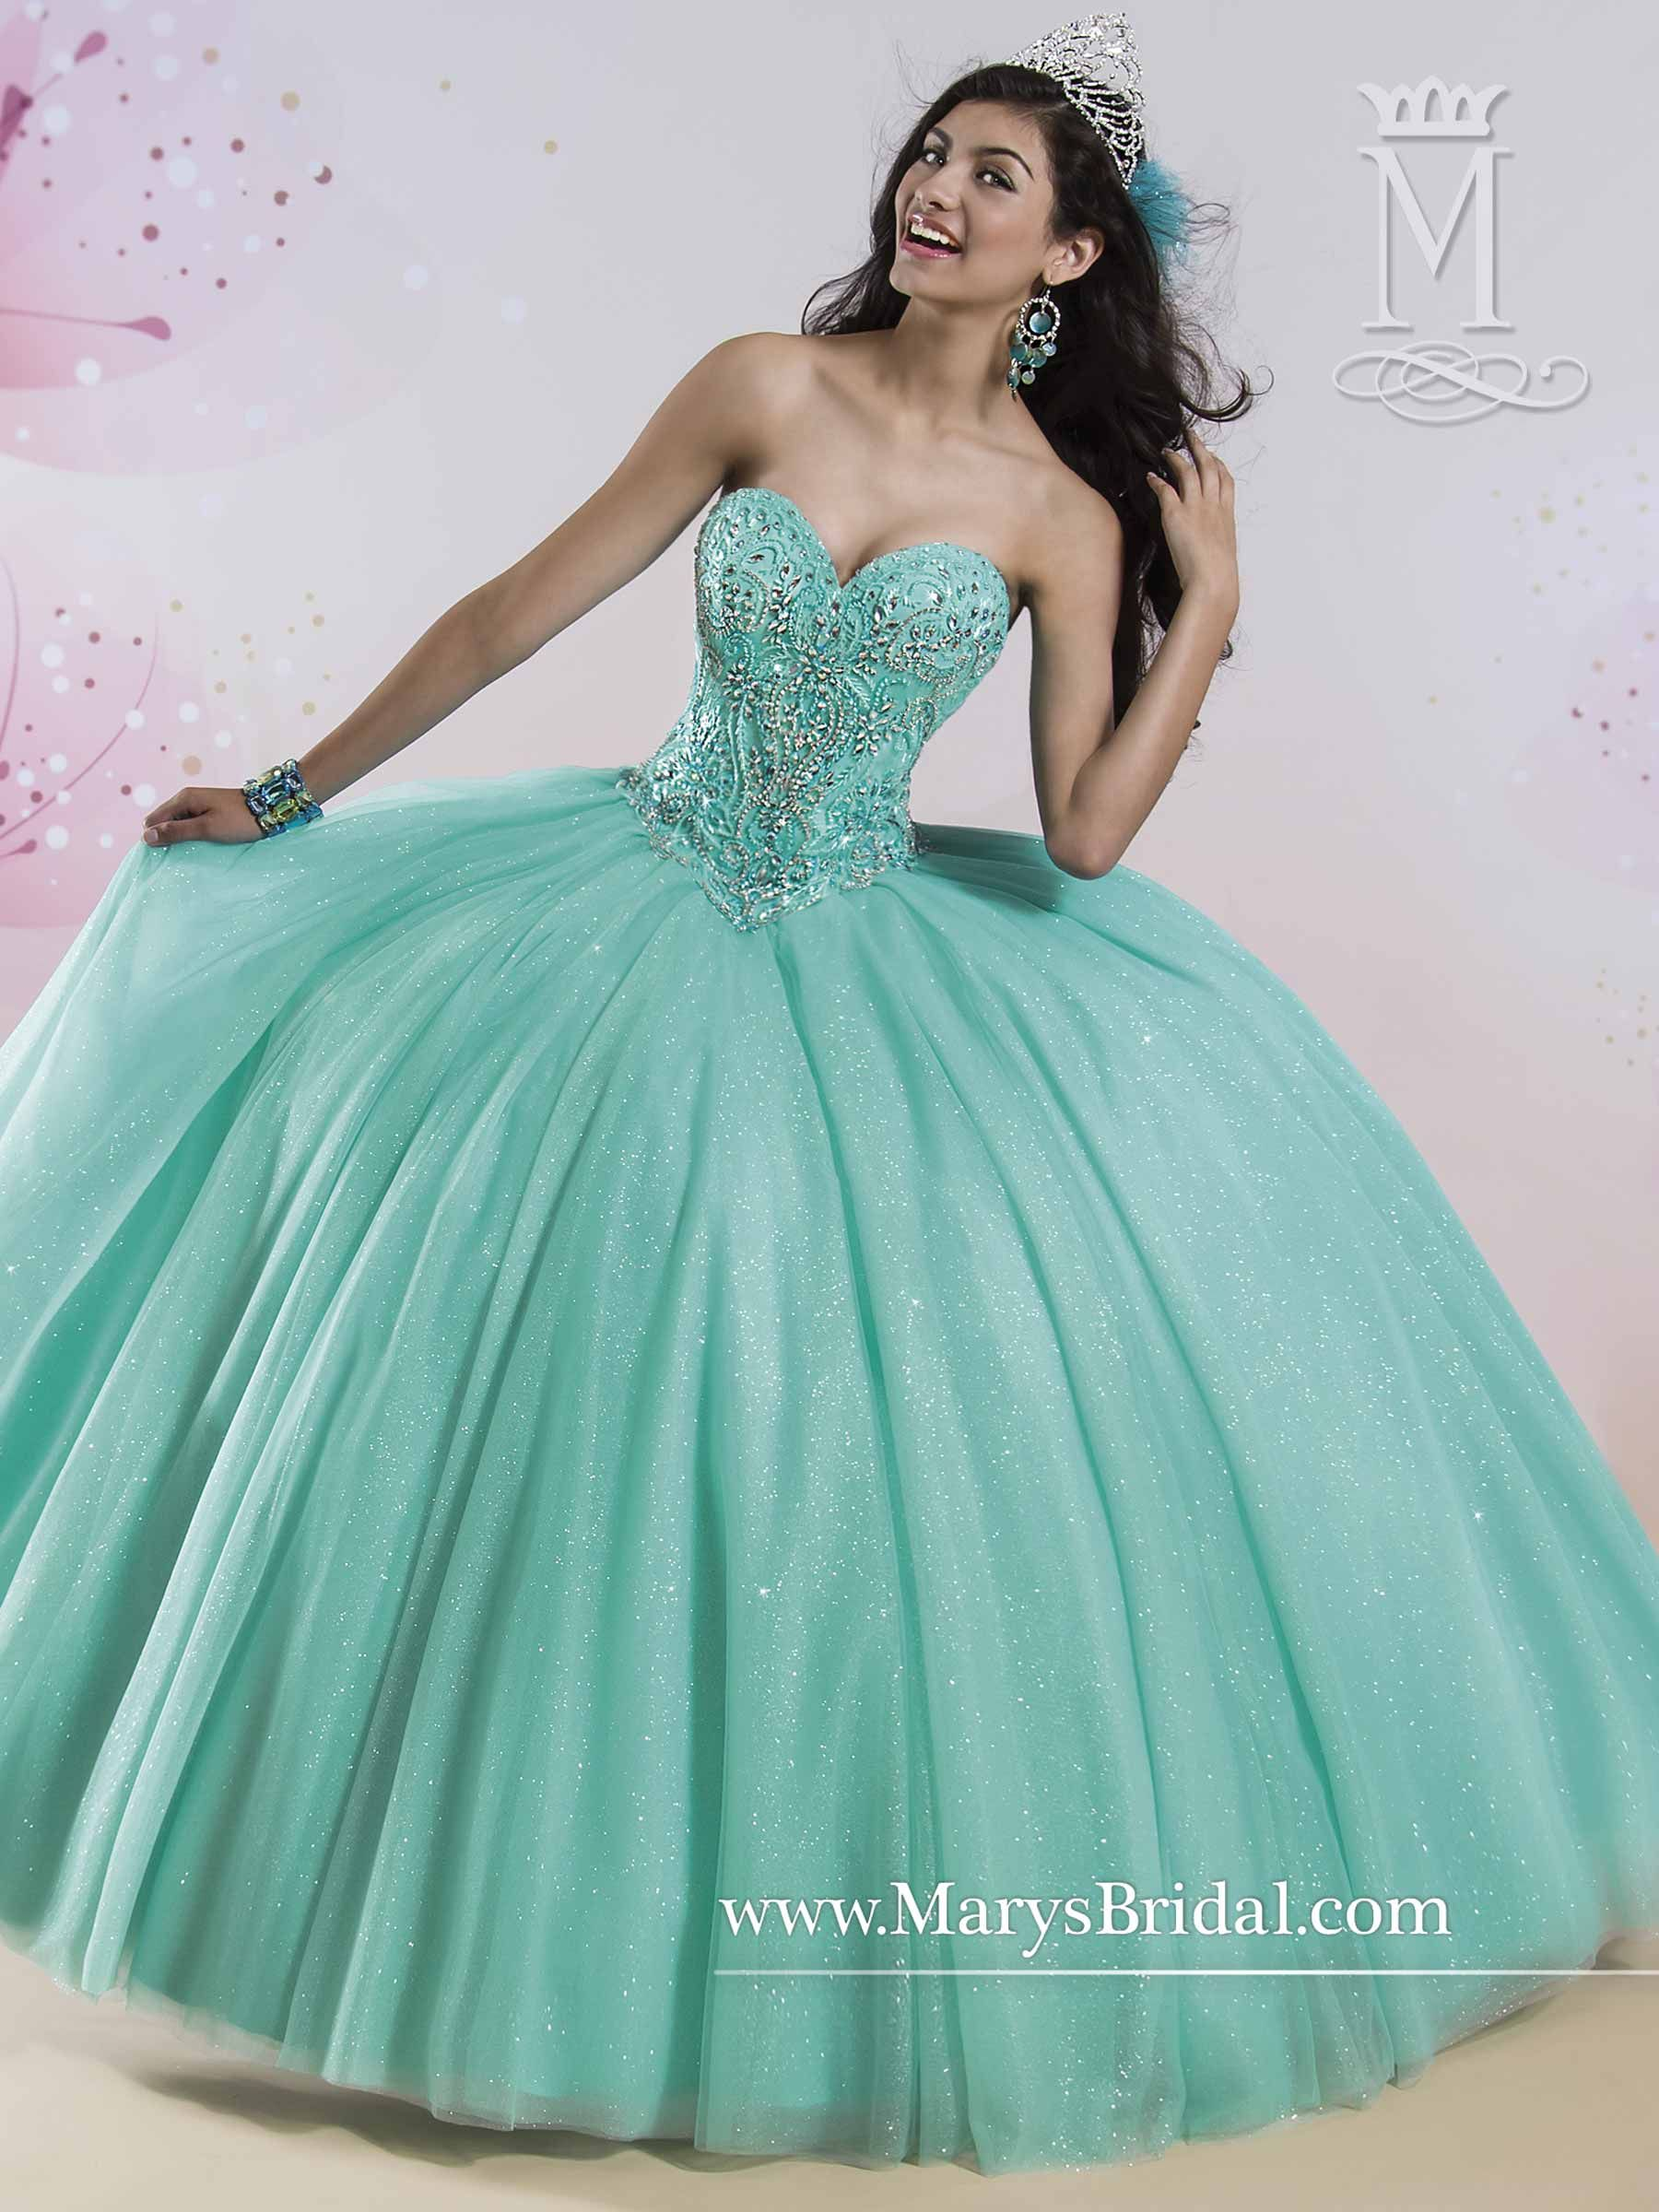 Don\'t worry, it comes in white. ;) Quinceanera - Princess - Style ...